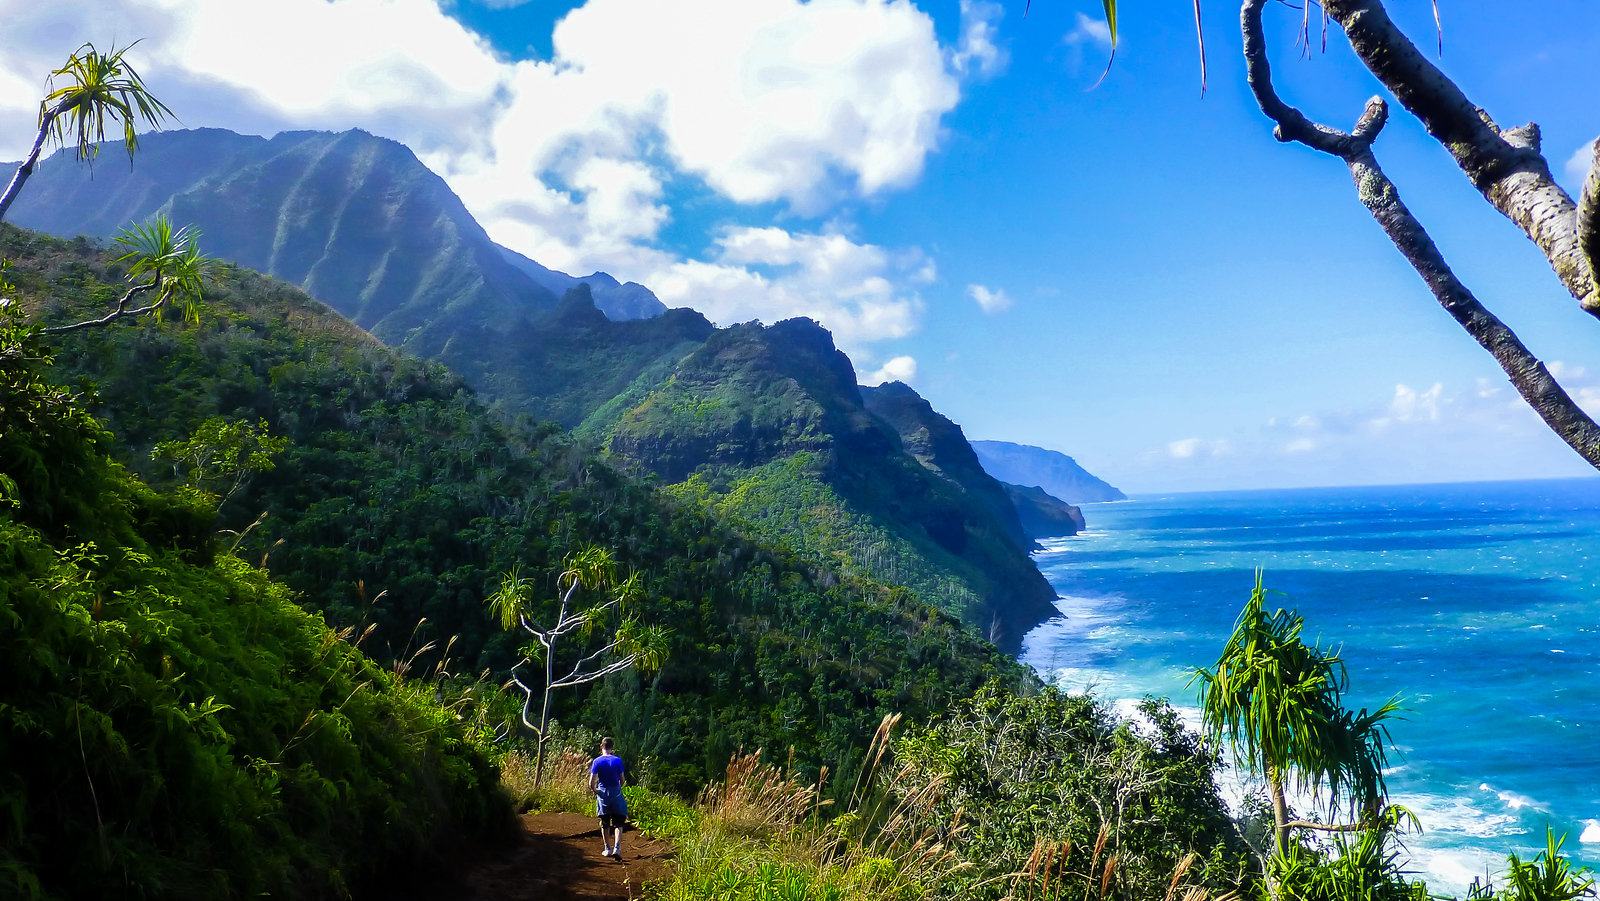 Things to do in Hawaii - Kauai island